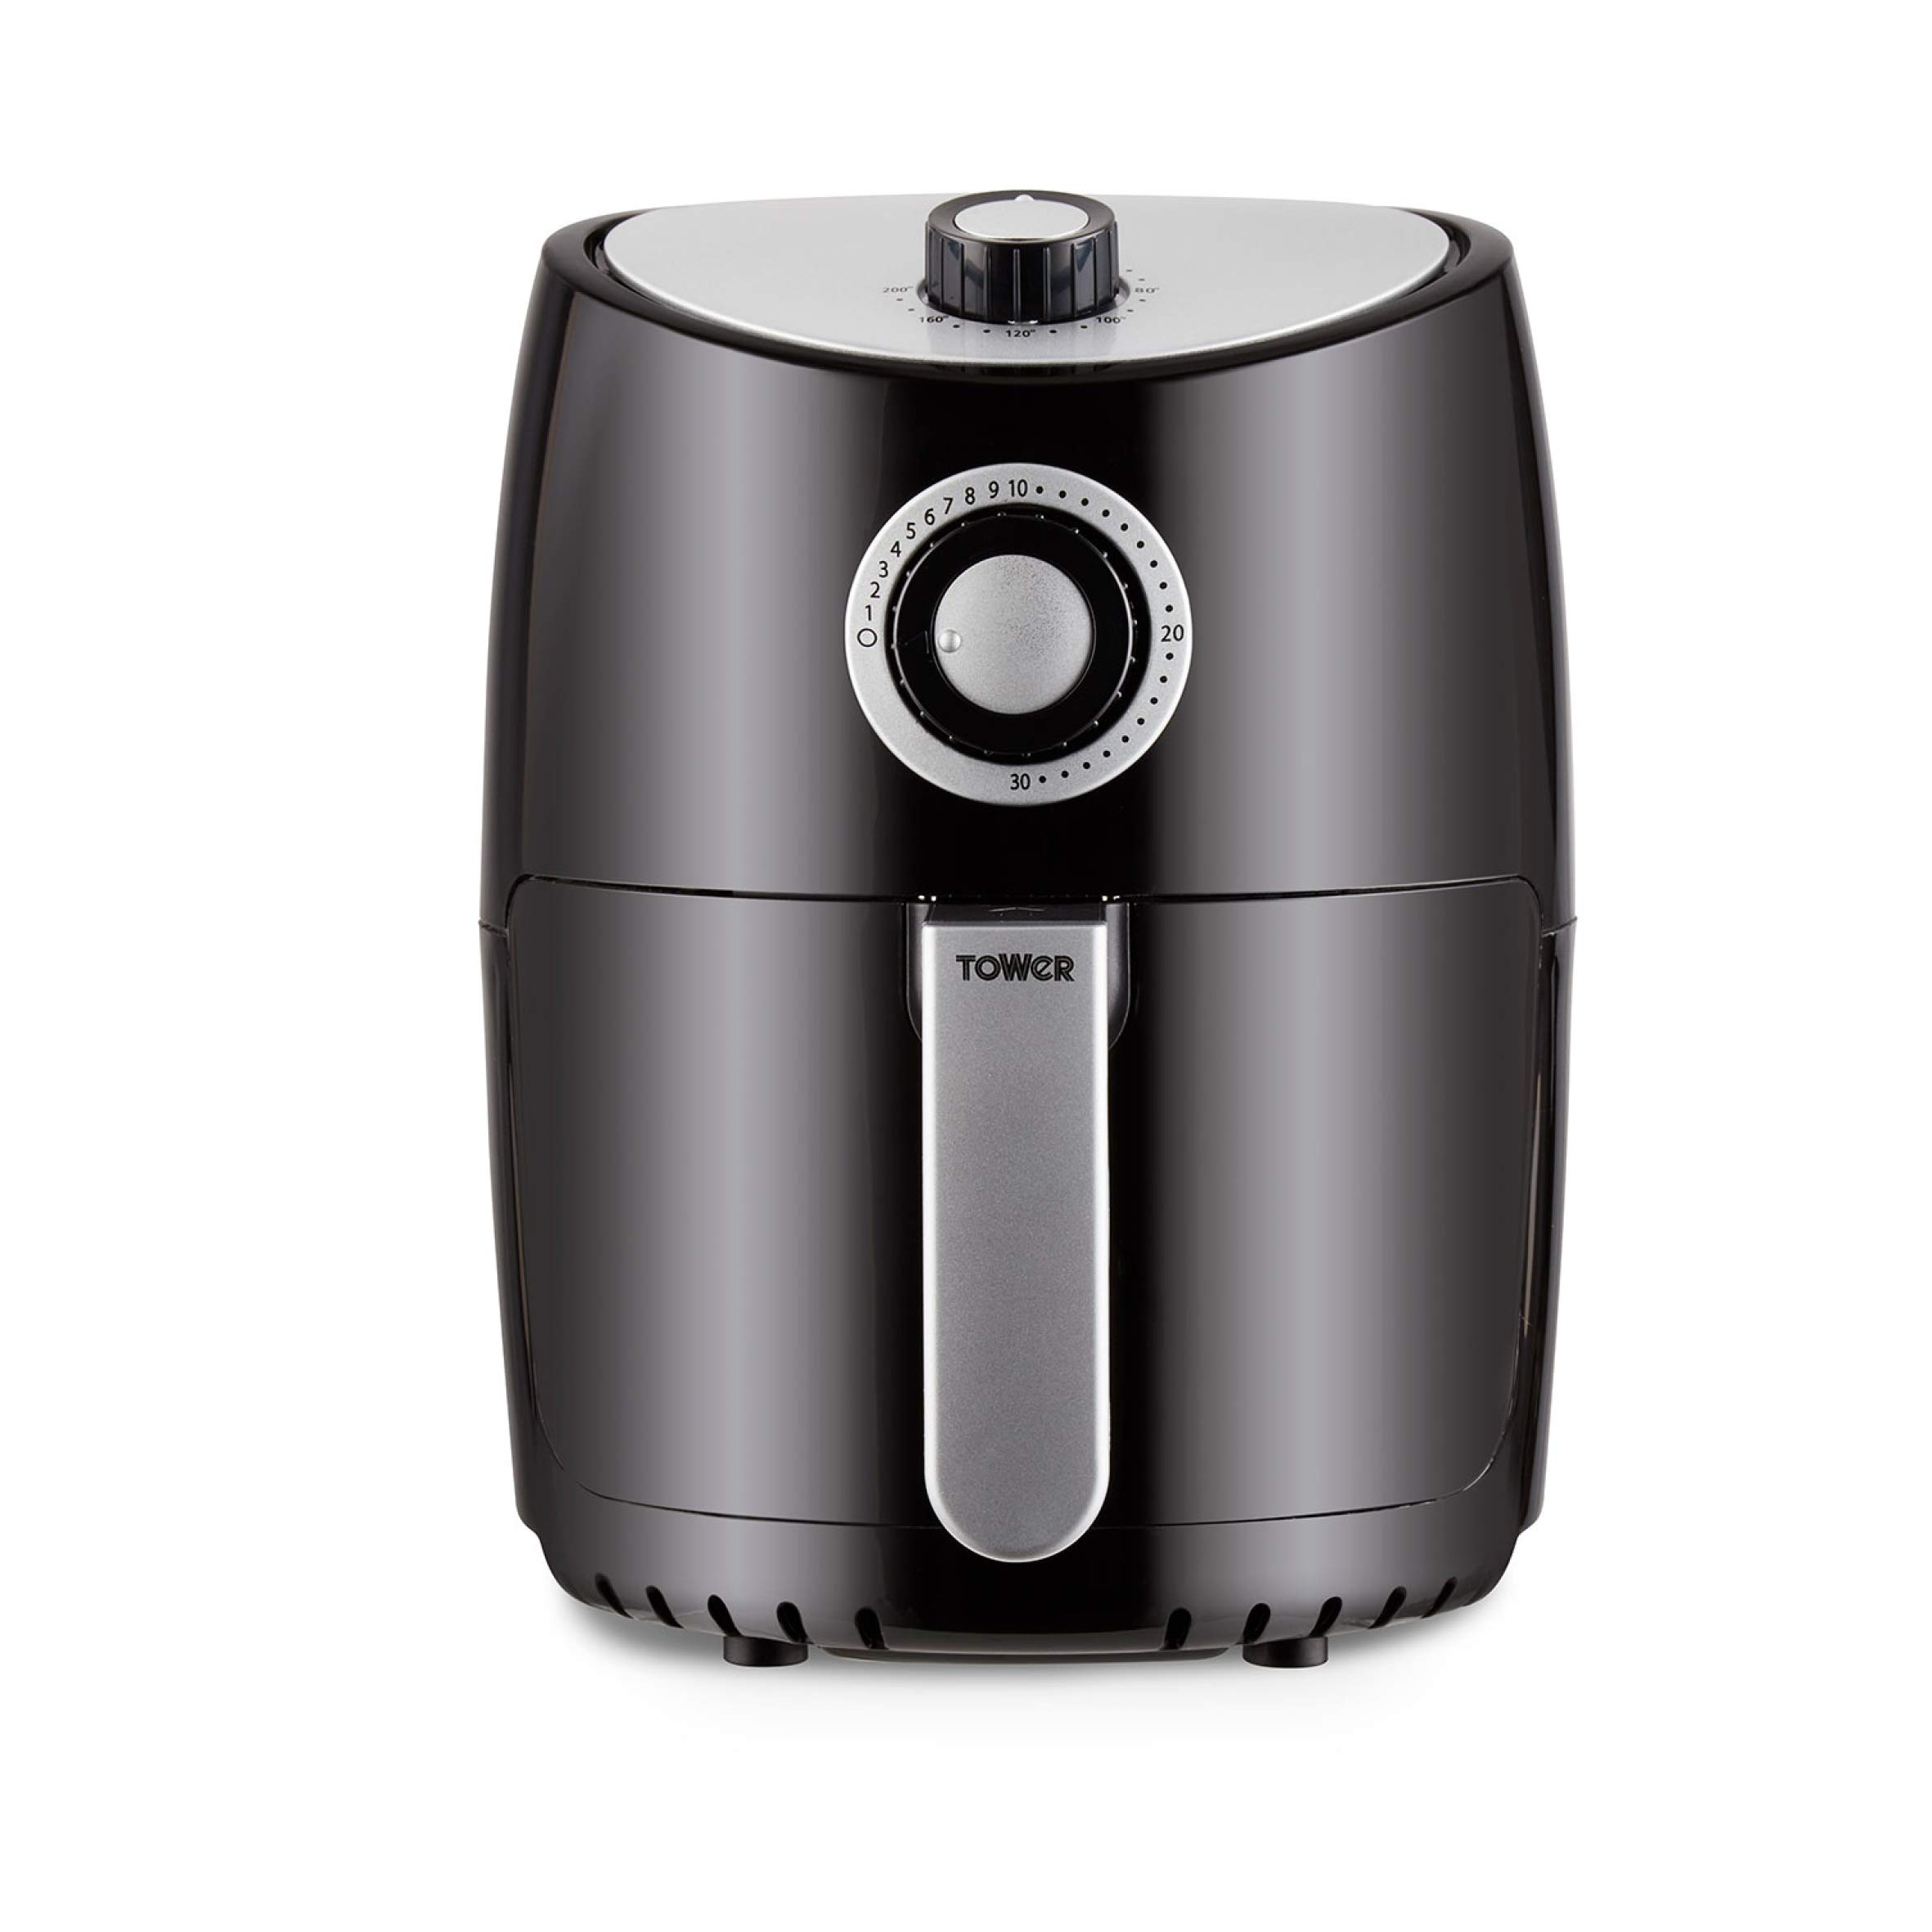 Tower T17023 Air Fryer Oven with Rapid Air Circulation and 30 Min Timer, 2.2 Litre, Black